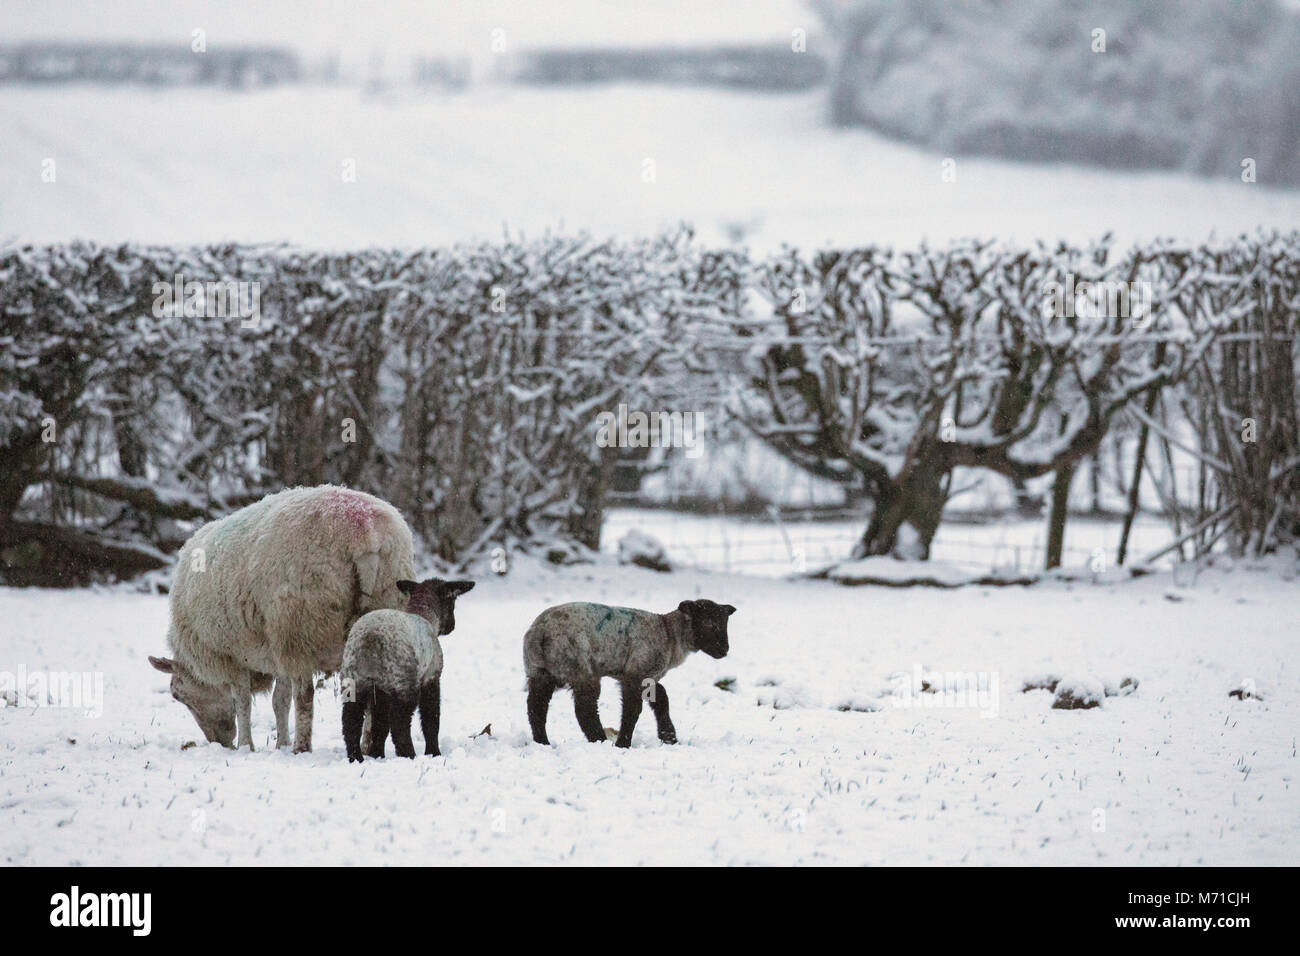 A ewe sheep and her lambs seeking protection from the heavy overnight snowfall and freezing temperatures in an upland - Stock Image